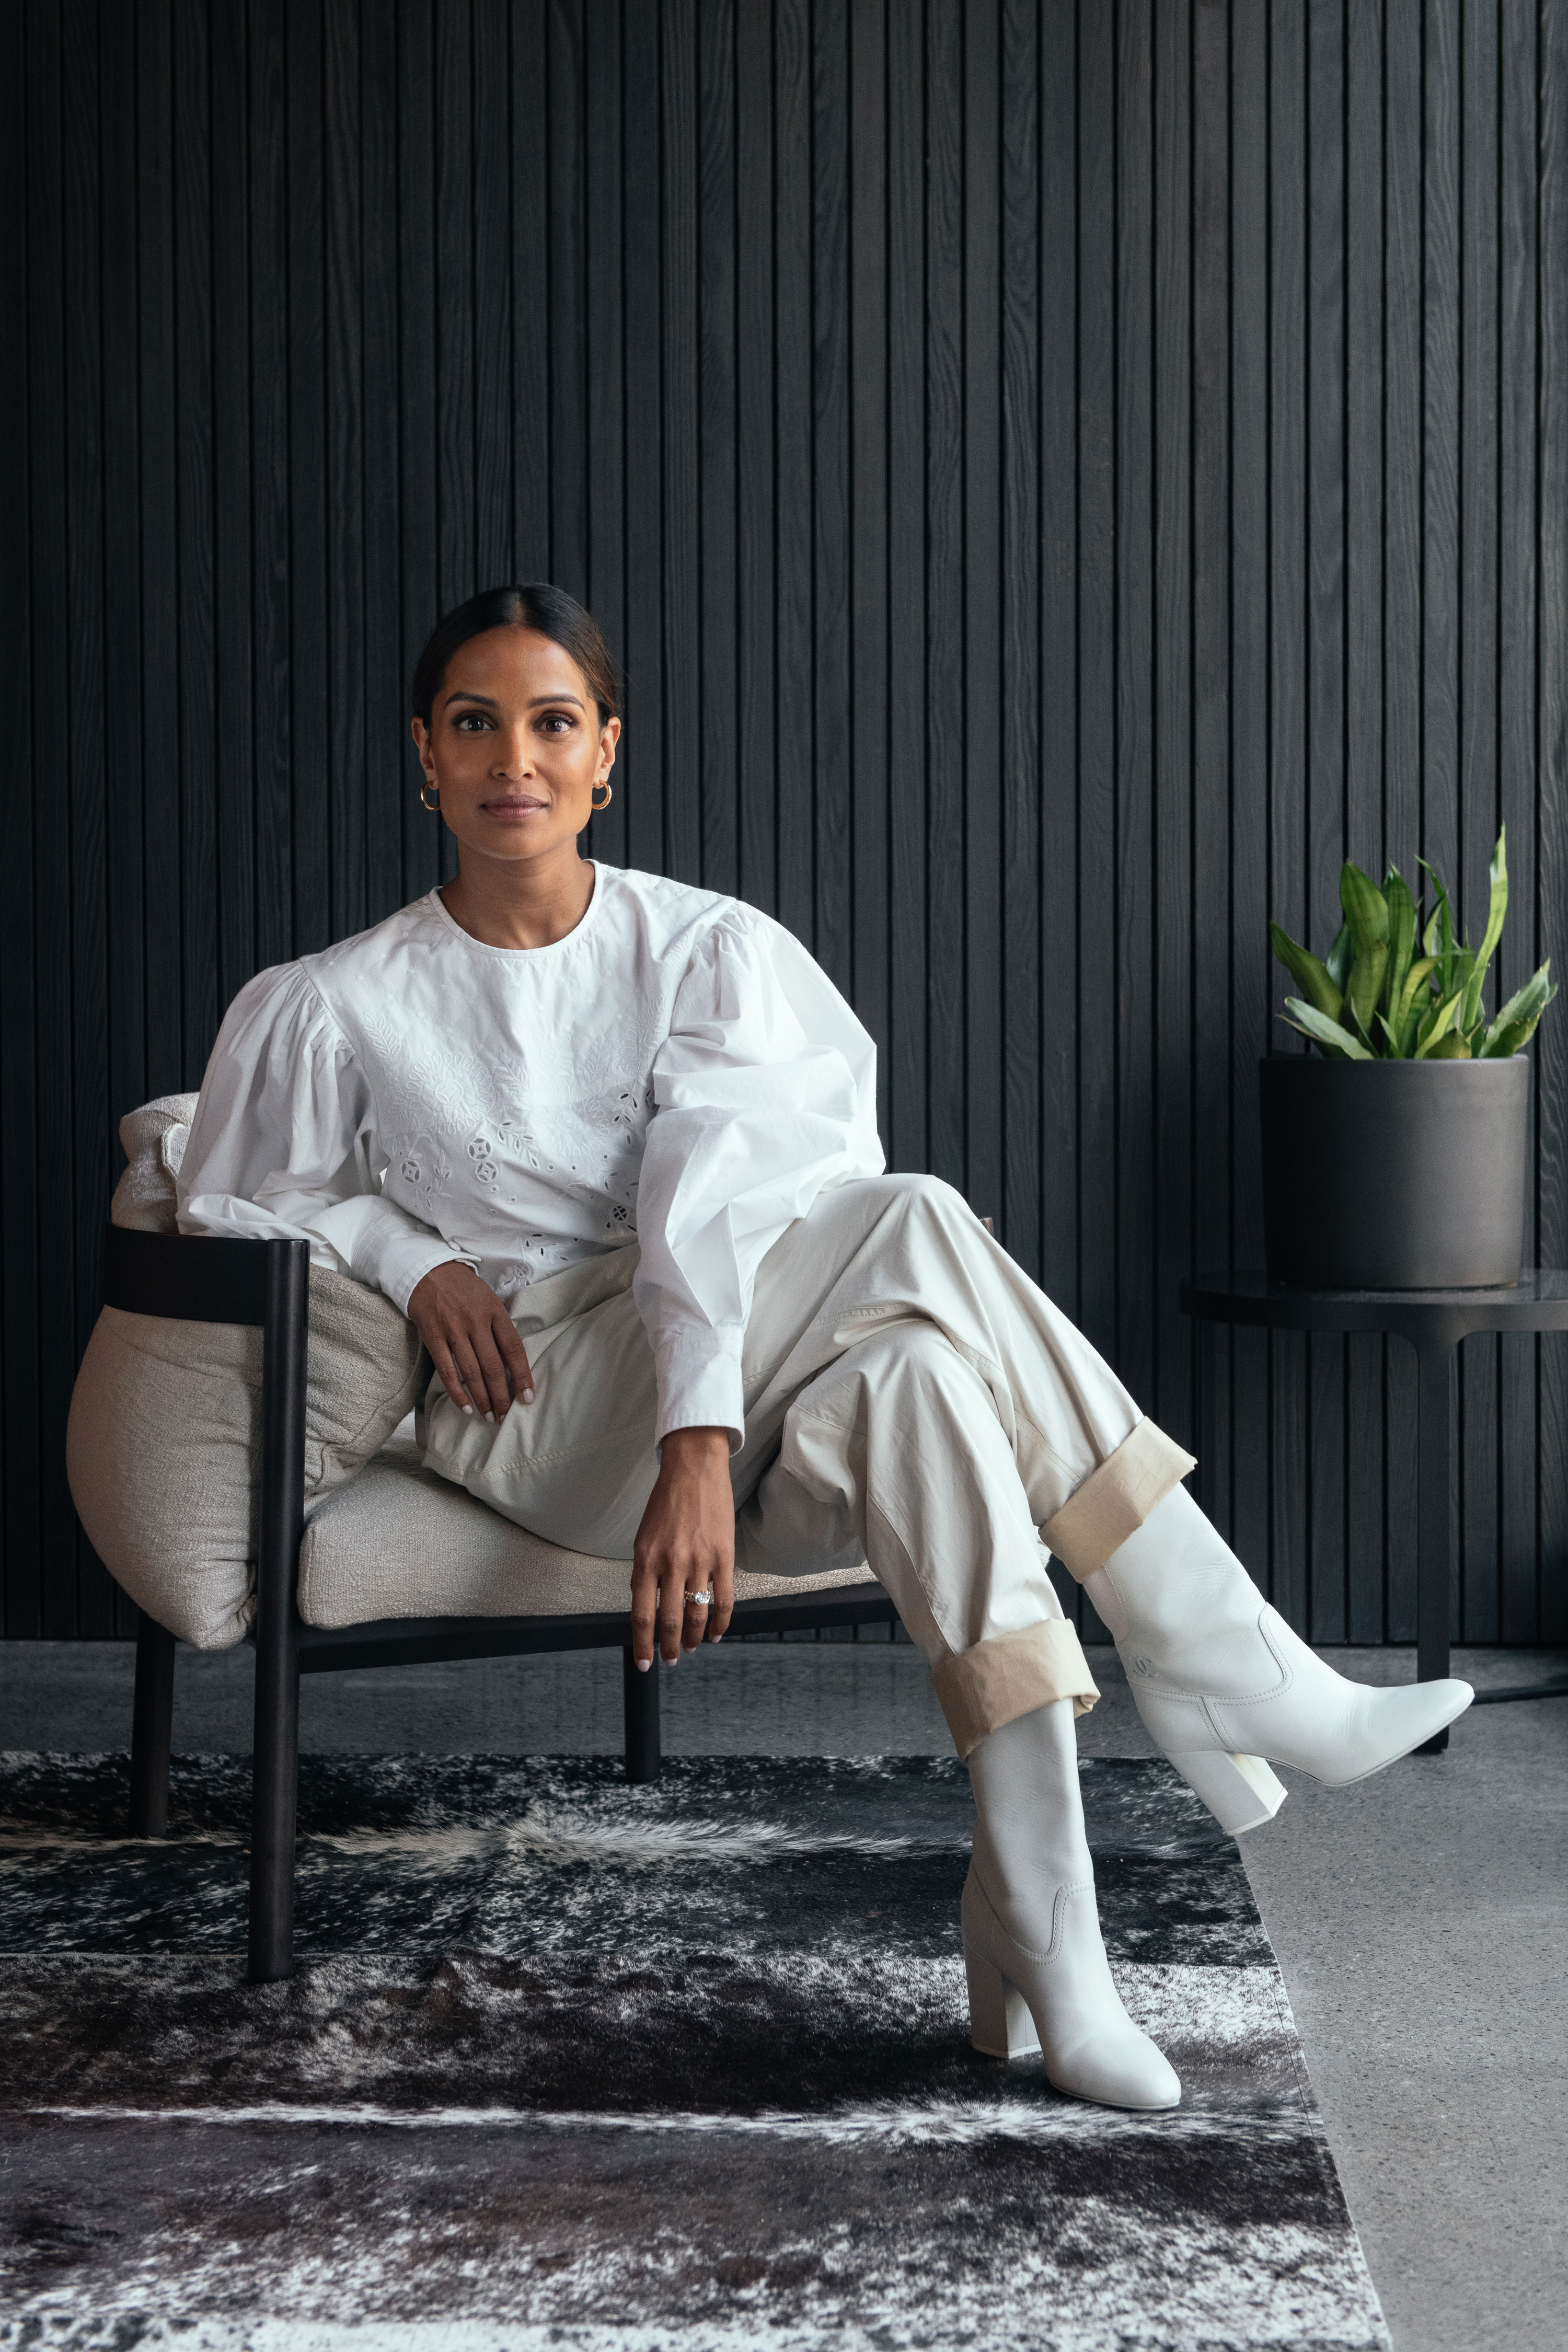 The Tech Executive Who Isn't Afraid to Wear All-White